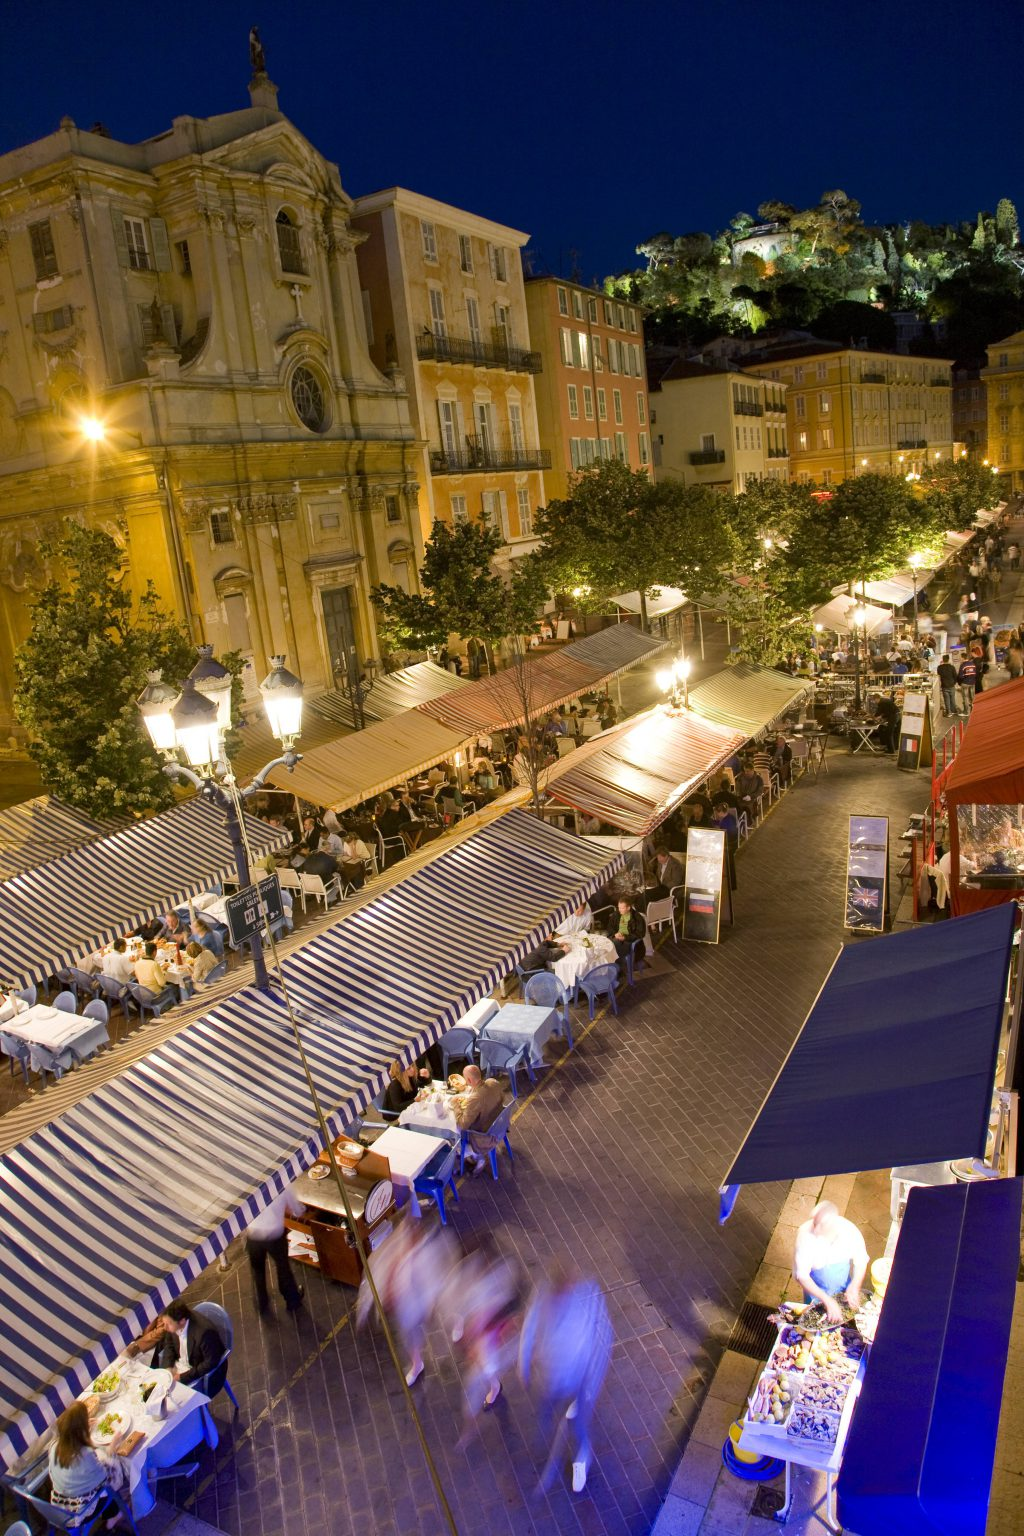 France, Cote d Azur, Nice, Cours Saleya at night PUBLICATIONxINxGERxSUIxAUTxHUNxONLY WD00135France Cote D Azur Nice Cours Saleya AT Night PUBLICATIONxINxGERxSUIxAUTxHUNxONLY WD00135